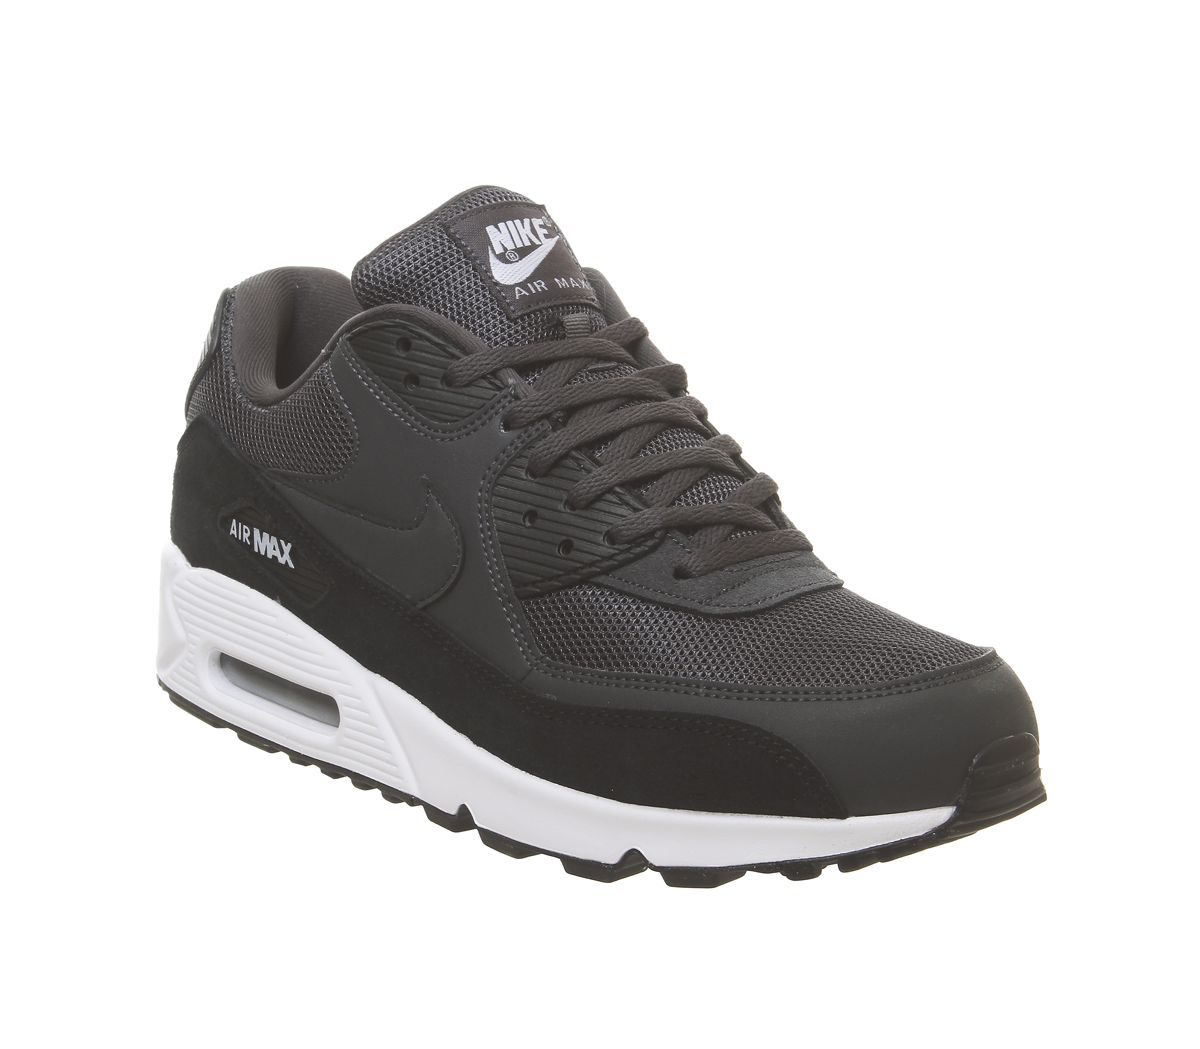 cheap for discount 7e375 def50 Nike Air Max 90 Anthracite White Black - Unisex Sports